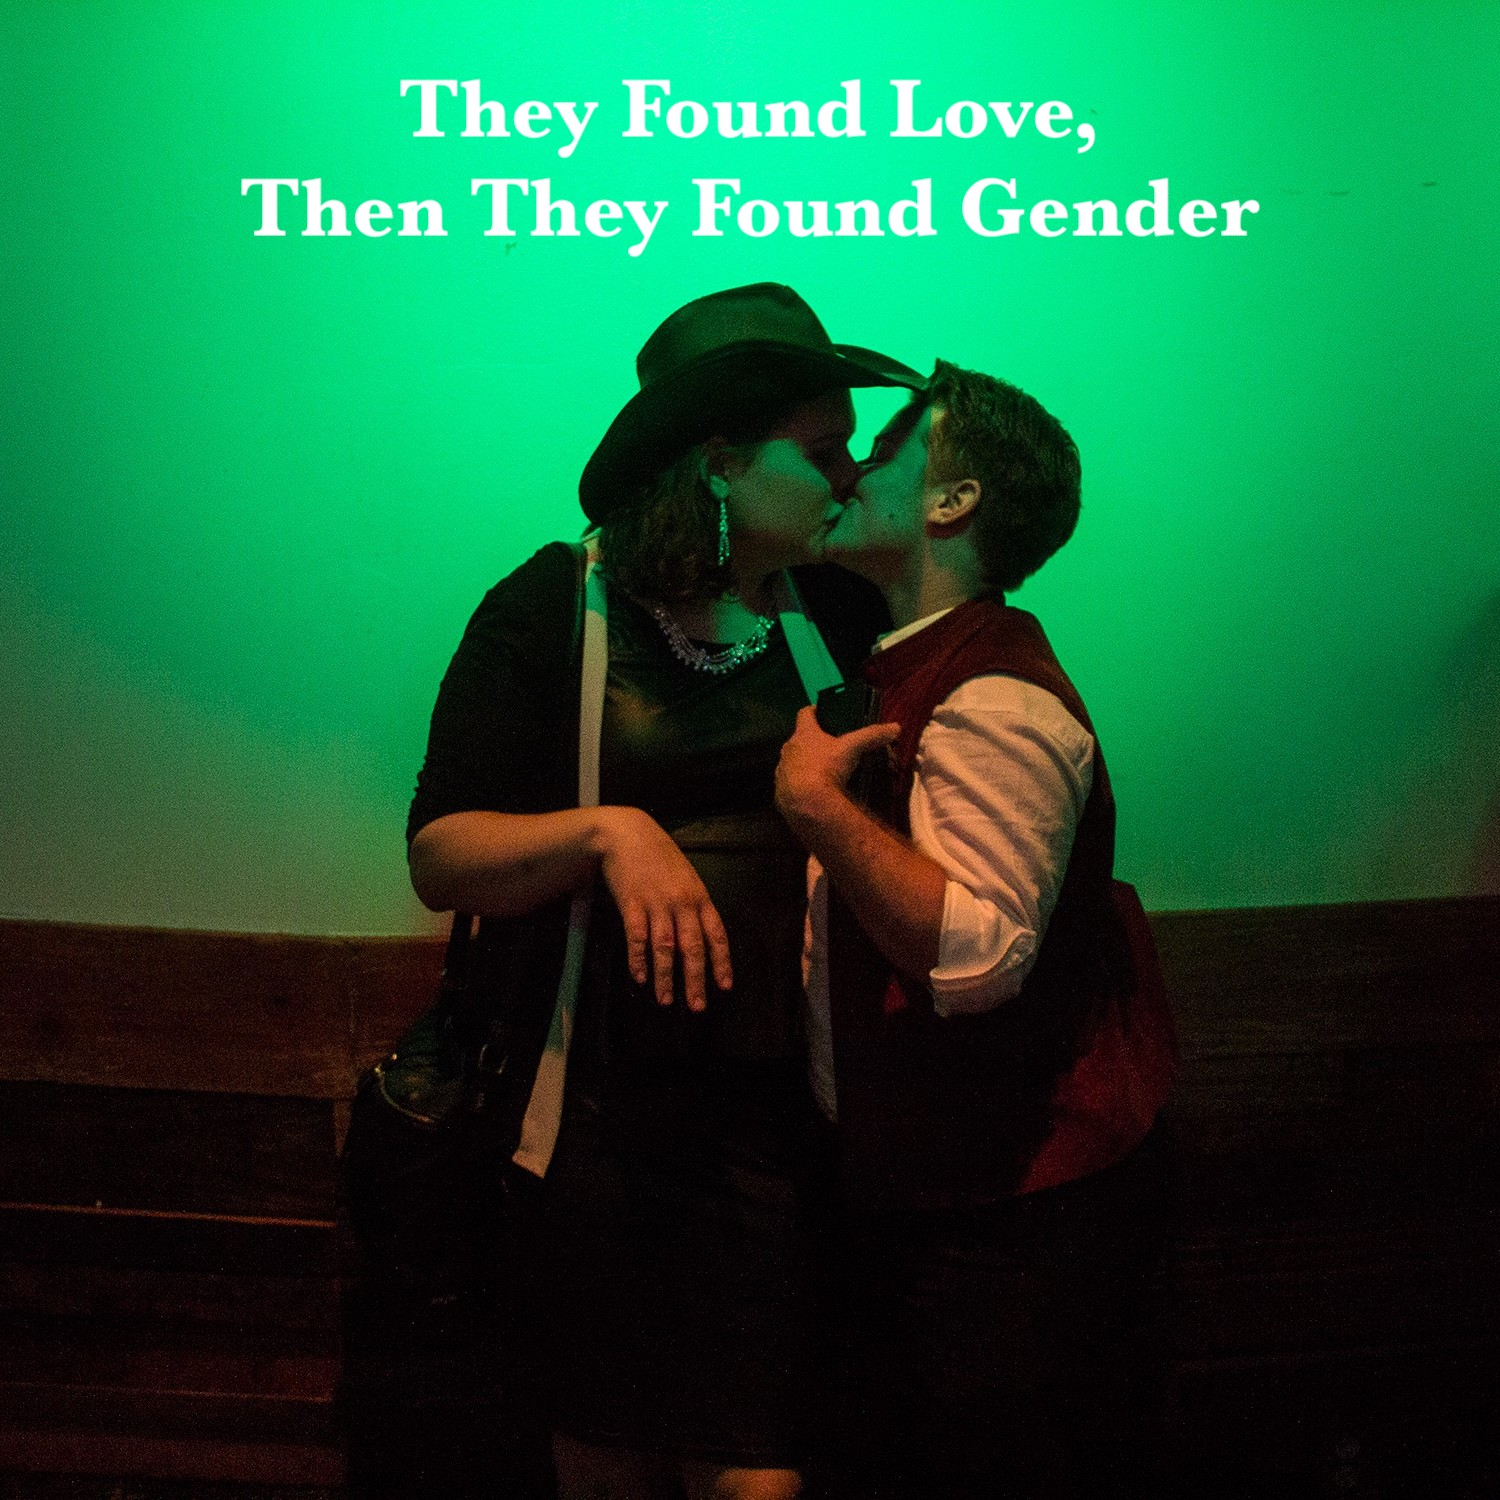 FEATURE:  The complex, modern love story of a gender-fluid couple.